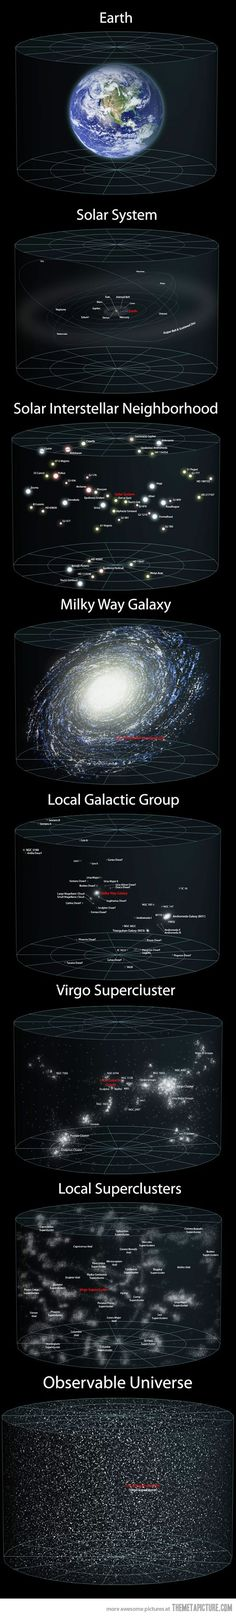 Perspective in space proportions - just when you thought you knew how vast the universe was./ Cosmos / Universo / Milki Way Galaxy / Earth / Solar System / Universe / Galactic Cosmos, Photo Images, Space And Astronomy, Hubble Space, Space Telescope, Carl Sagan, Space Time, Space Space, To Infinity And Beyond